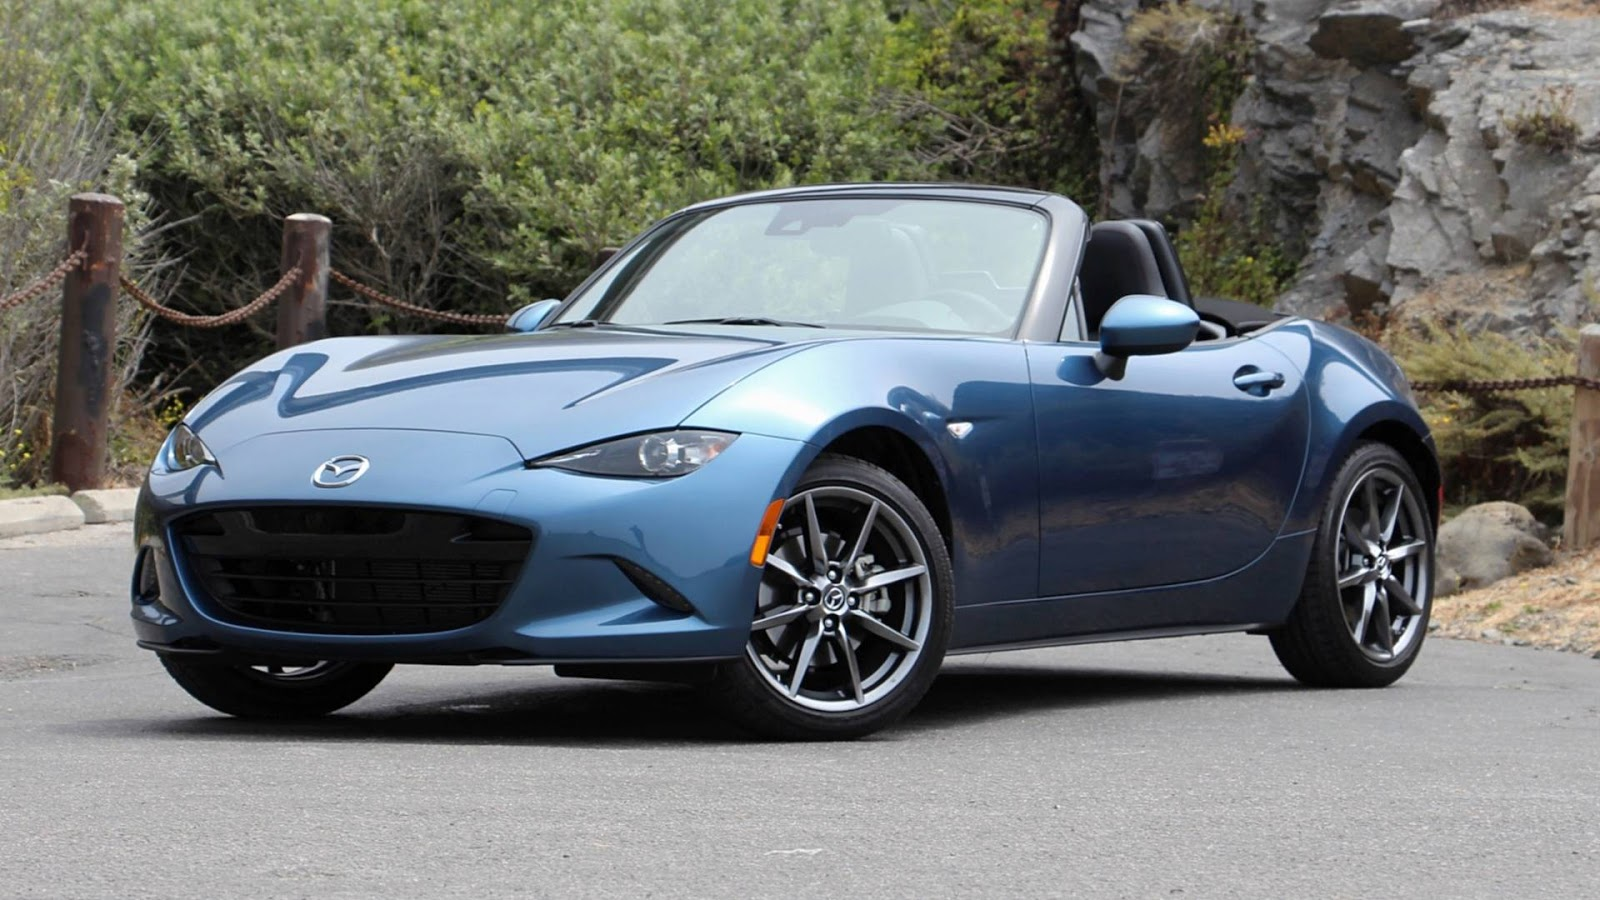 Mazda MX-5 Car Wallpaper For Android and iPhone | Mobile